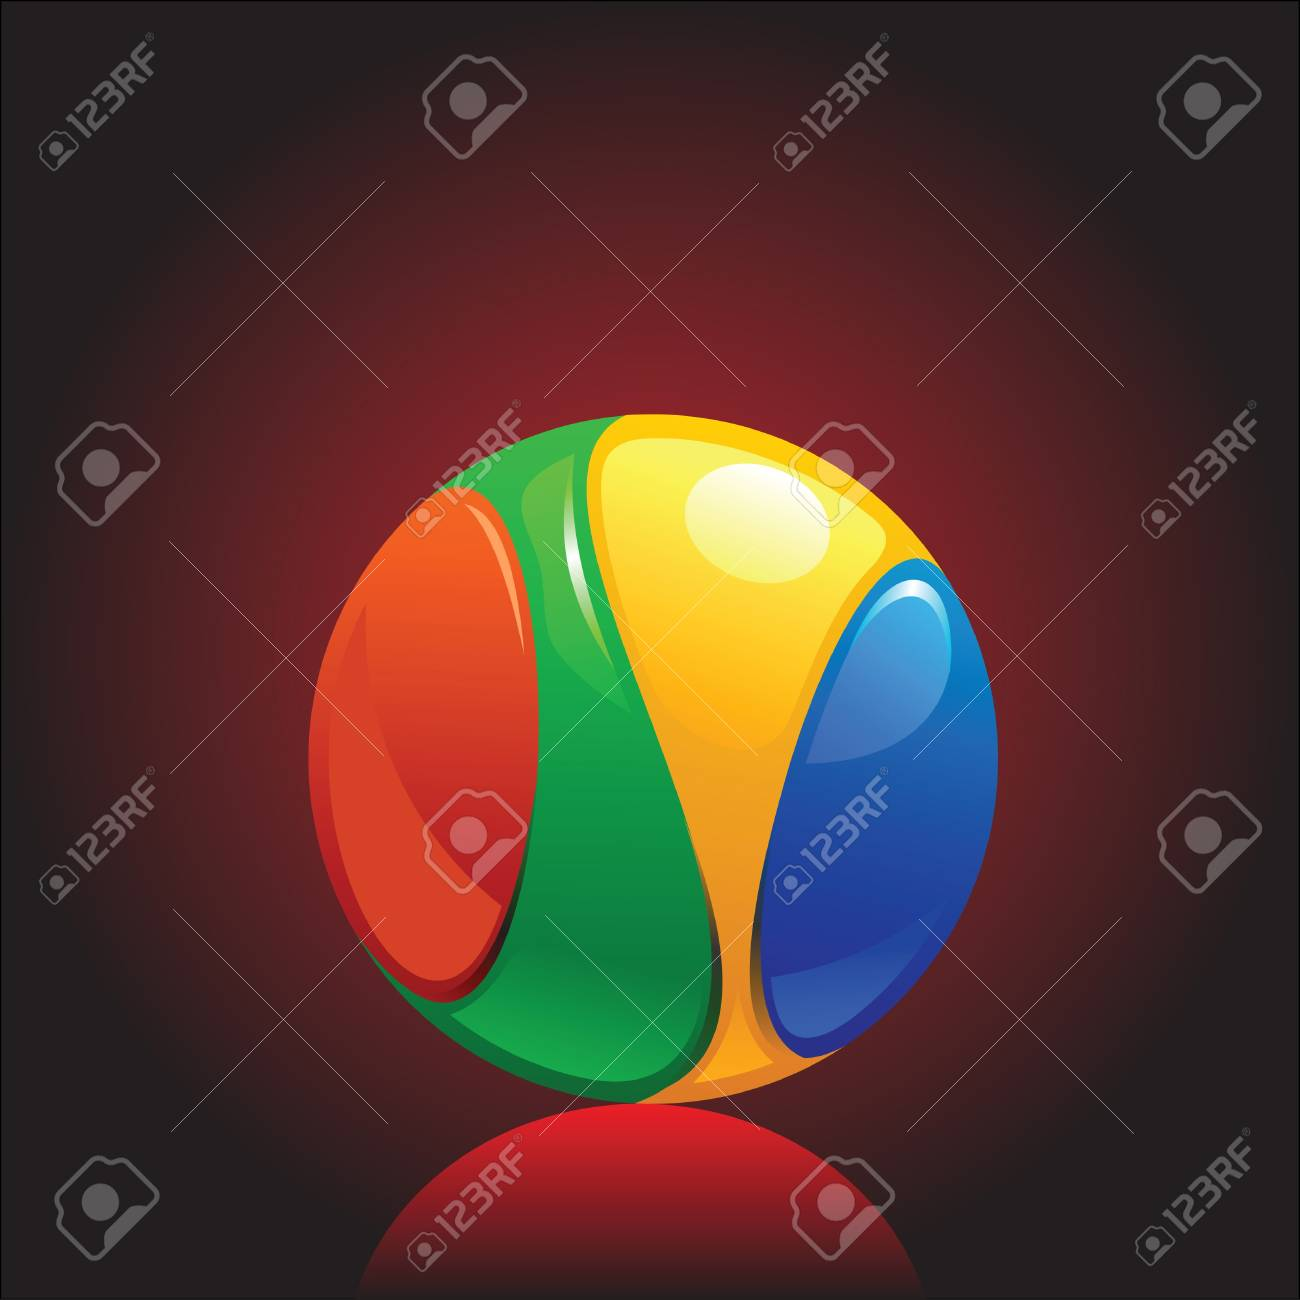 colorful and shiny chromium ball graphics agains dark background Stock Vector - 10121883